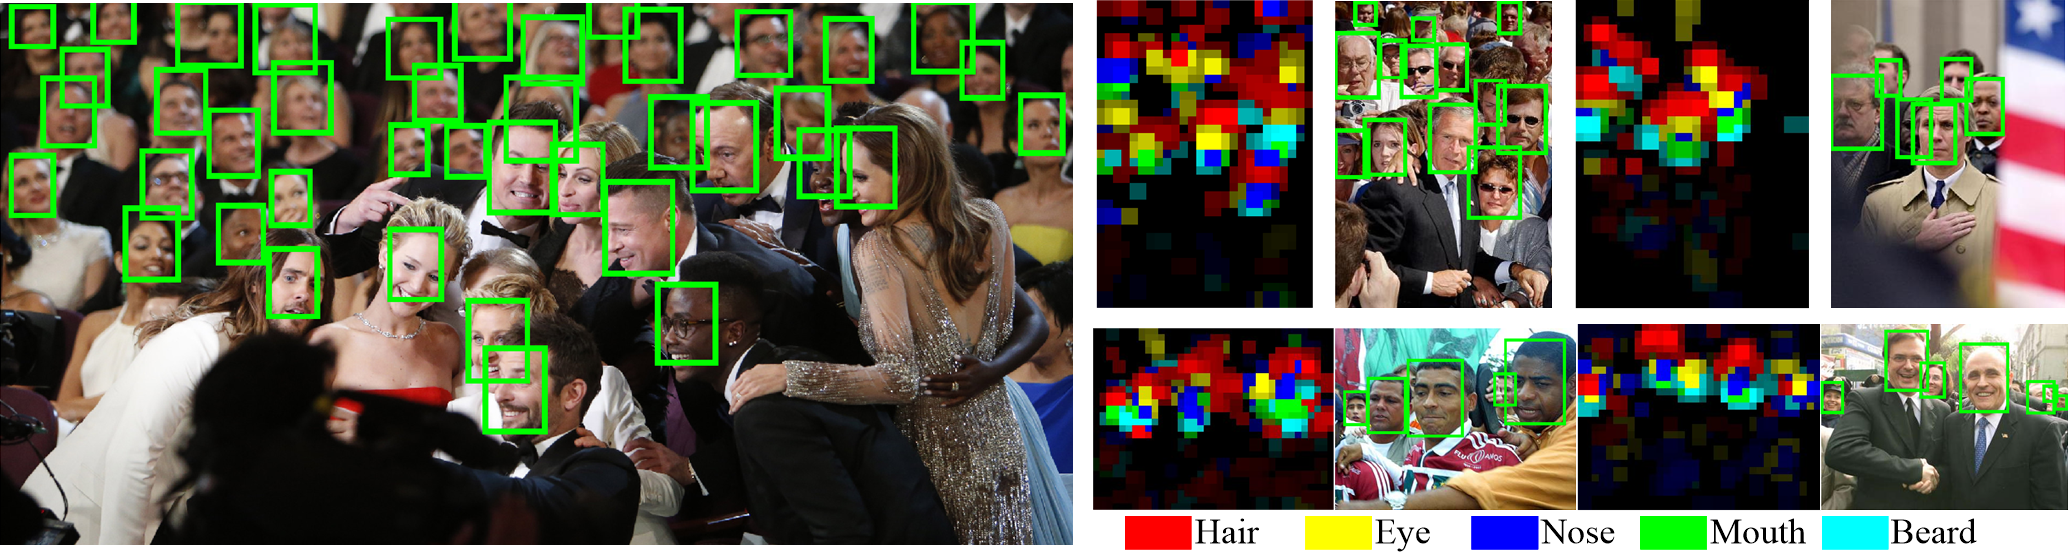 Face Detection and Recognition - swinghu